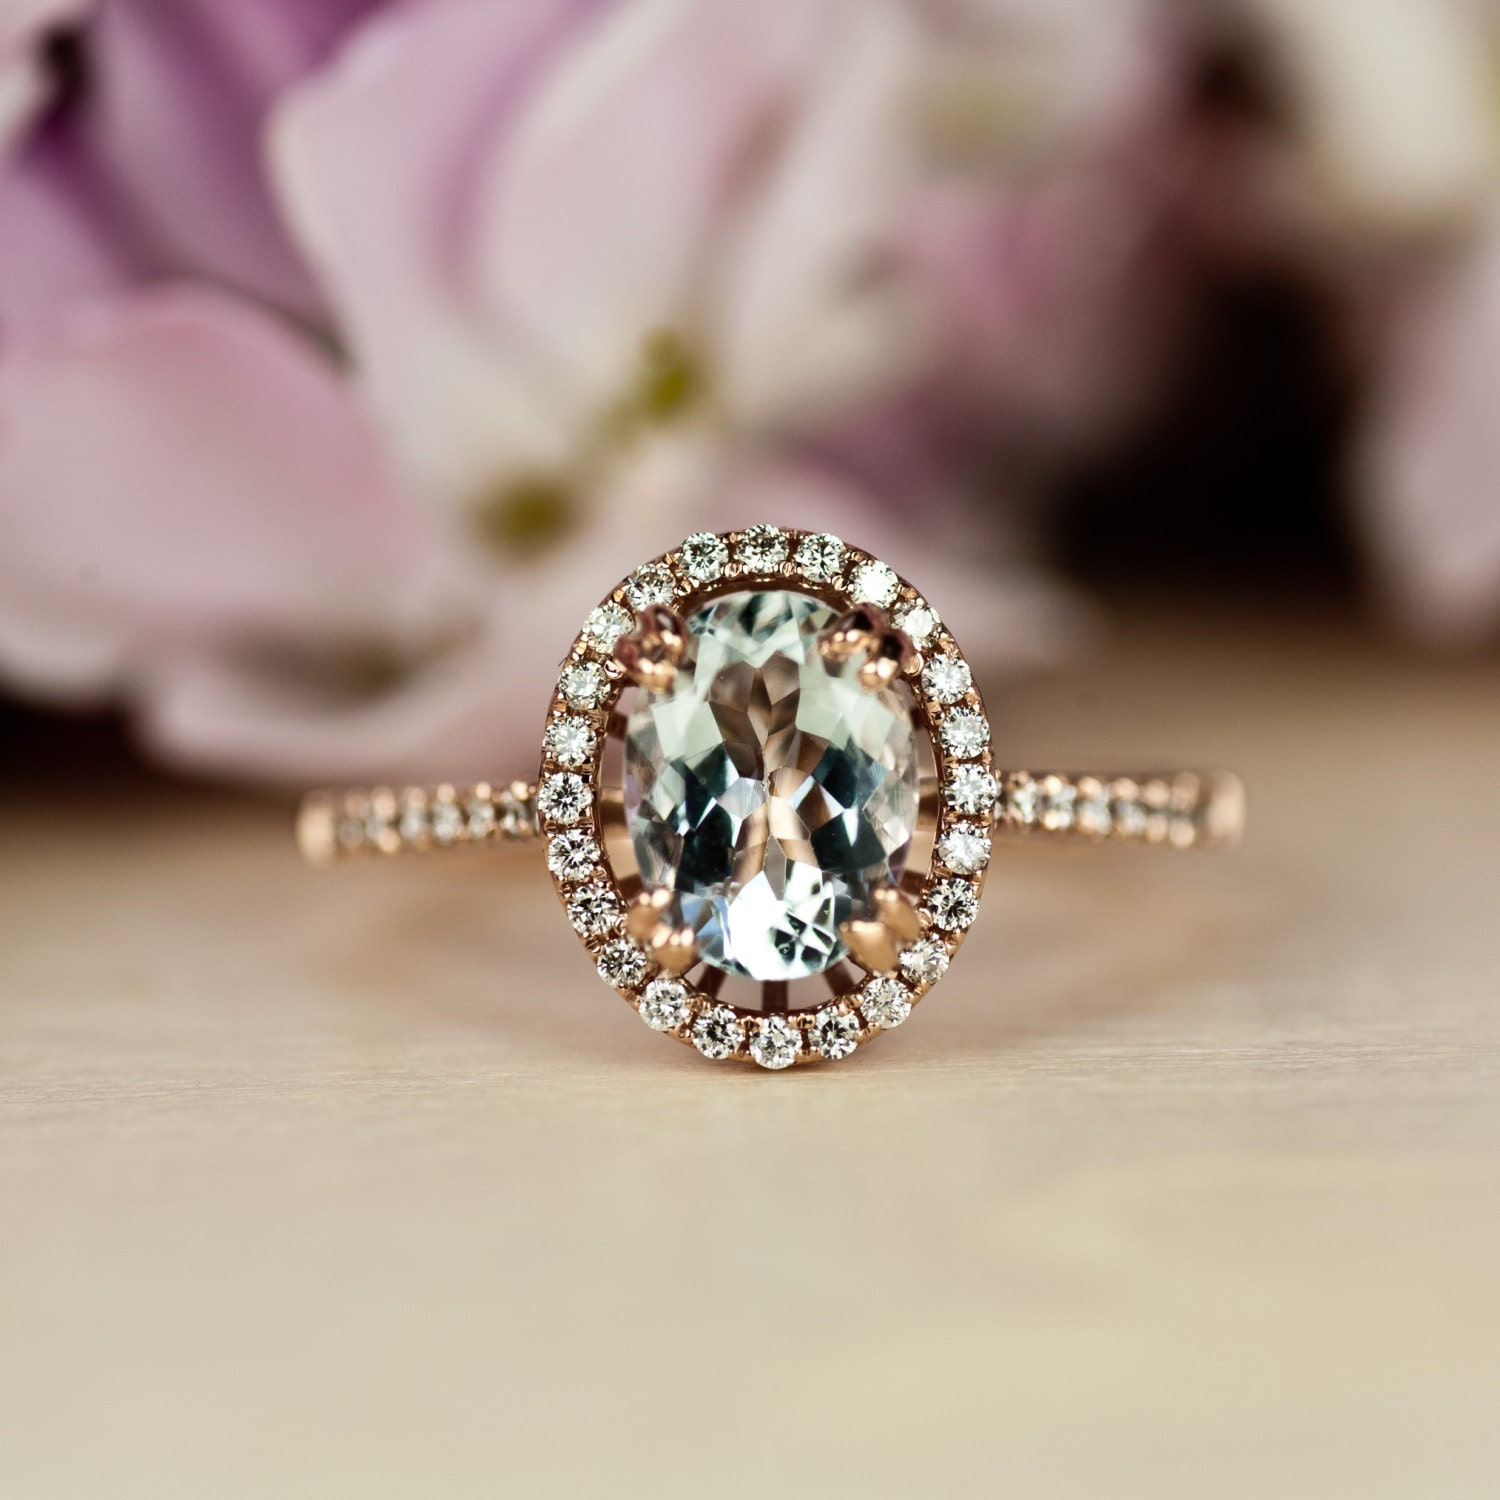 aquamarine engagement ring unique engagement ring rose gold. Black Bedroom Furniture Sets. Home Design Ideas